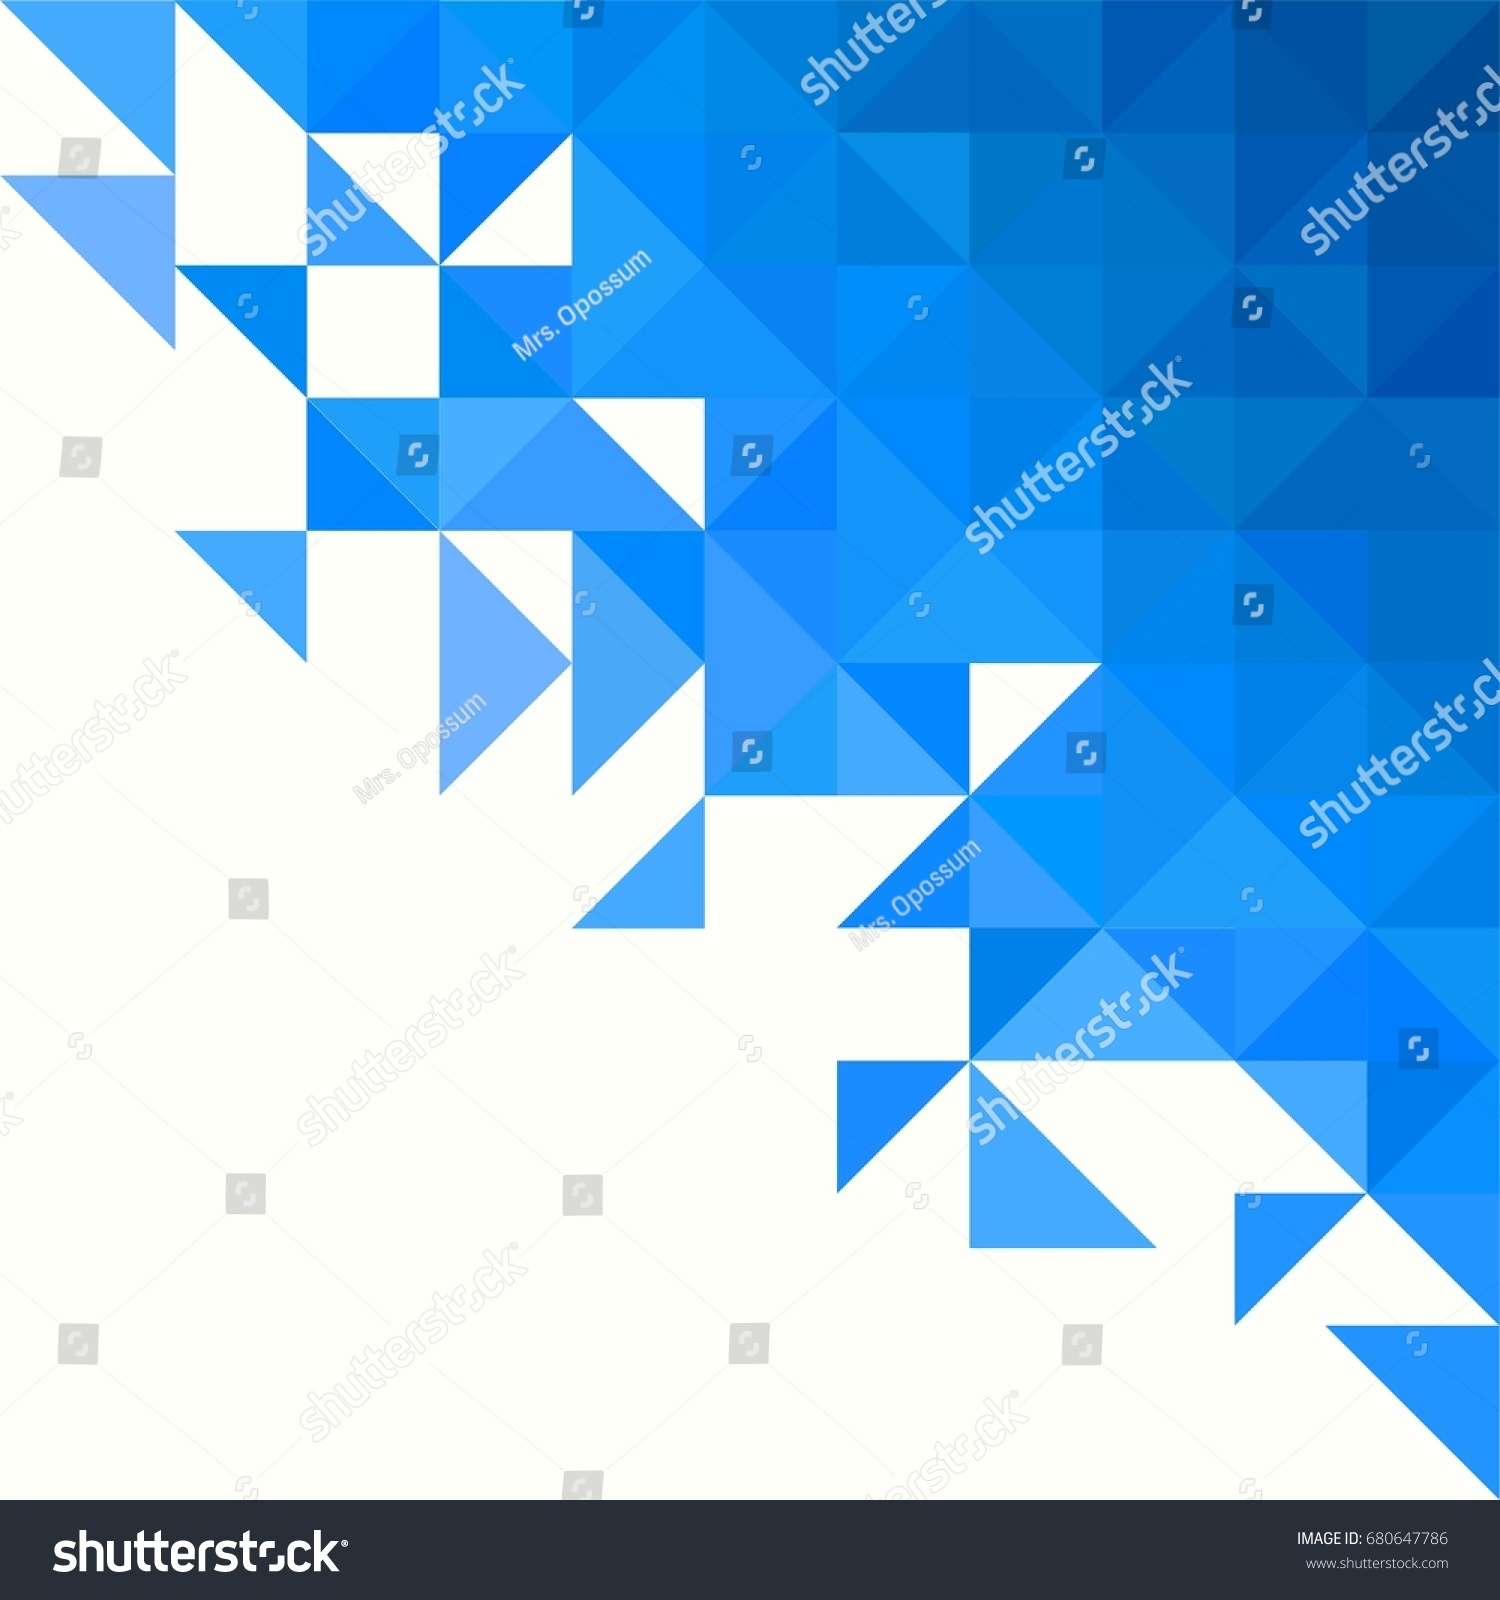 Background Geometric Shapes Colorful Mosaic Pattern Stock Vector ...